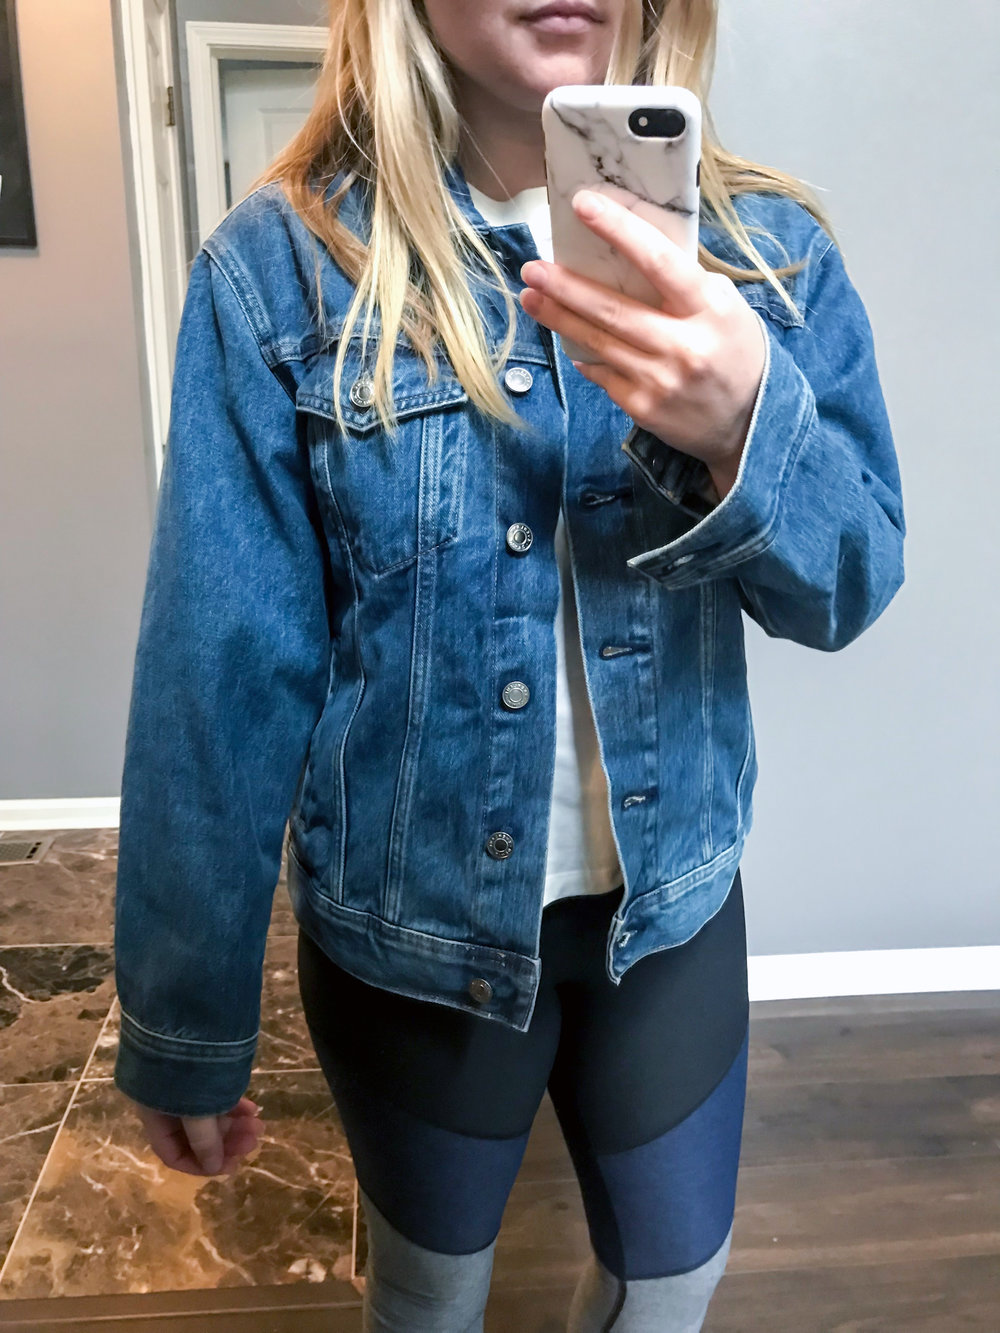 Maggie a la Mode - Recent Home Try-Ons Everlane Denim Jacket.jpg